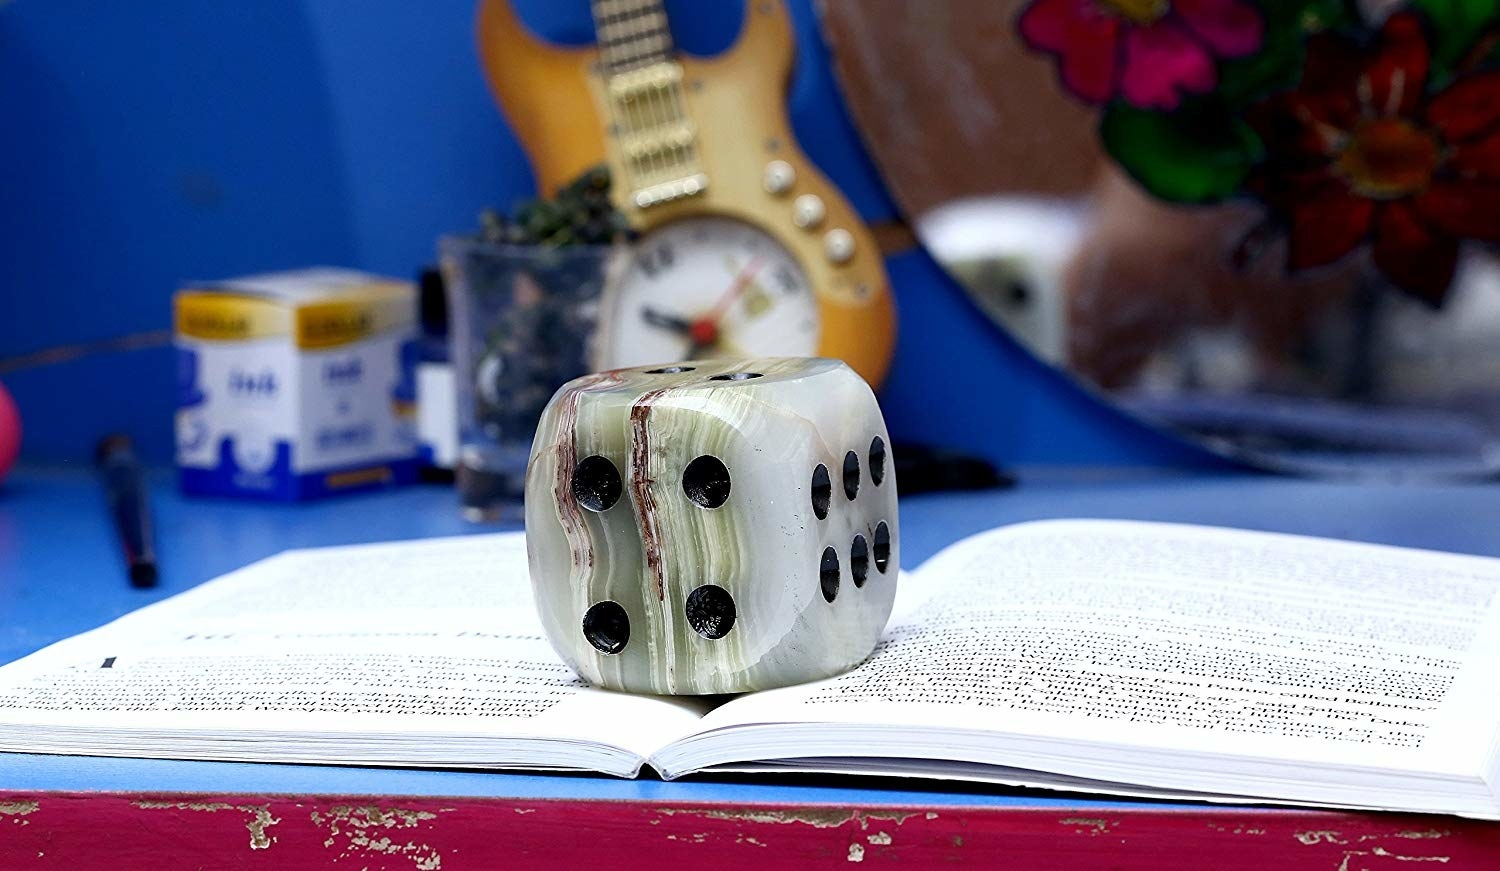 The dice shaped paperweight placed on top of an open book